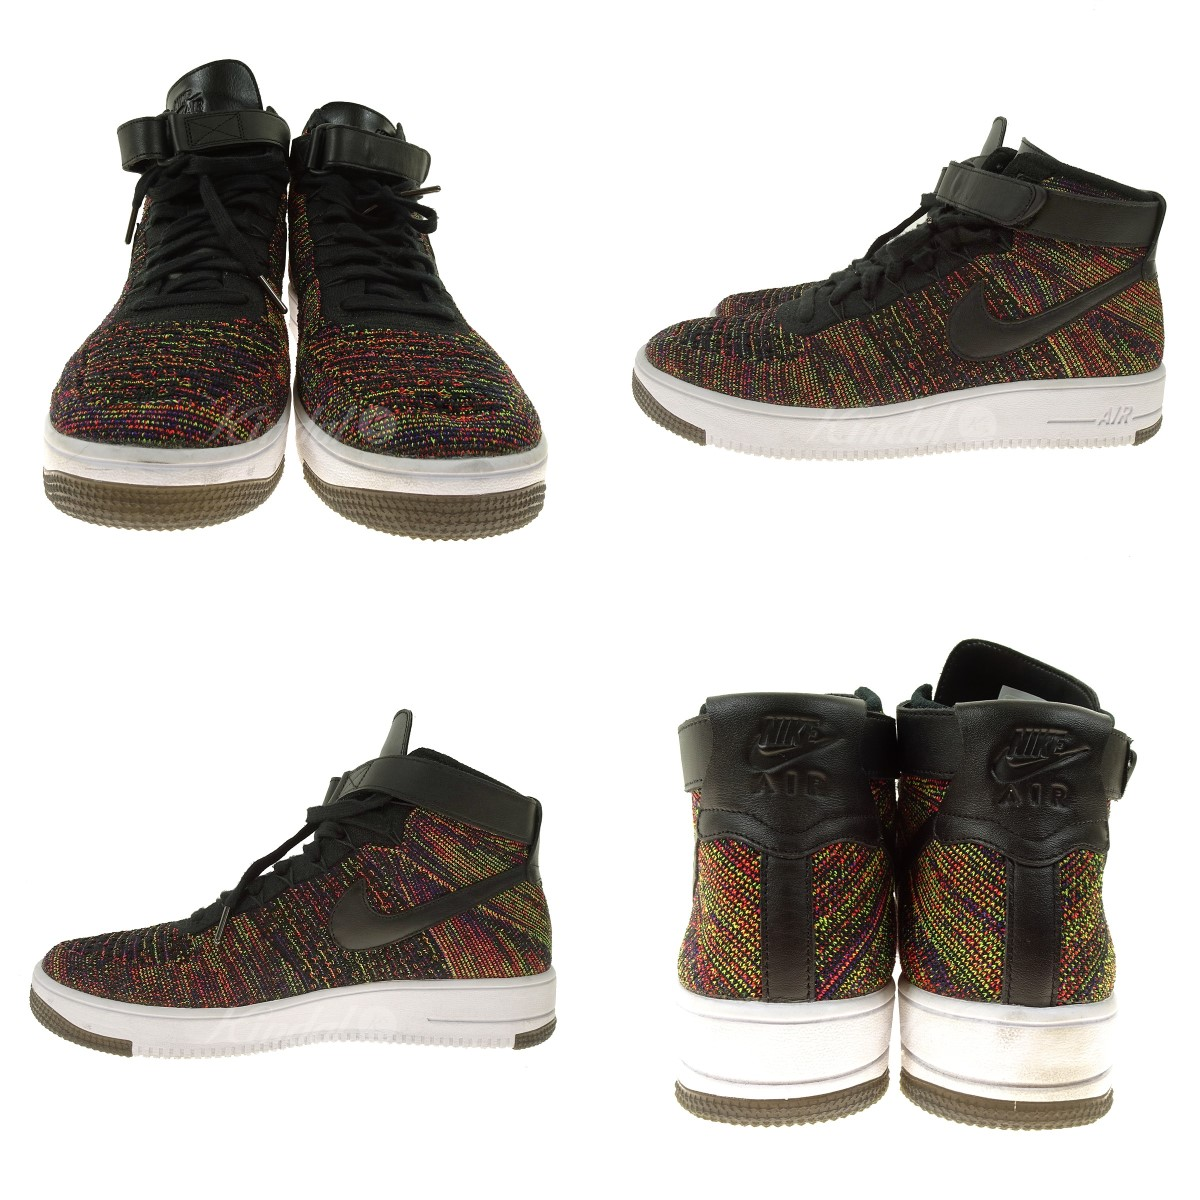 NIKE AIR FORCE 1 ULTRA FLYKNIT MID 817,420 002 multicolored size: 29 5cm (Nike)